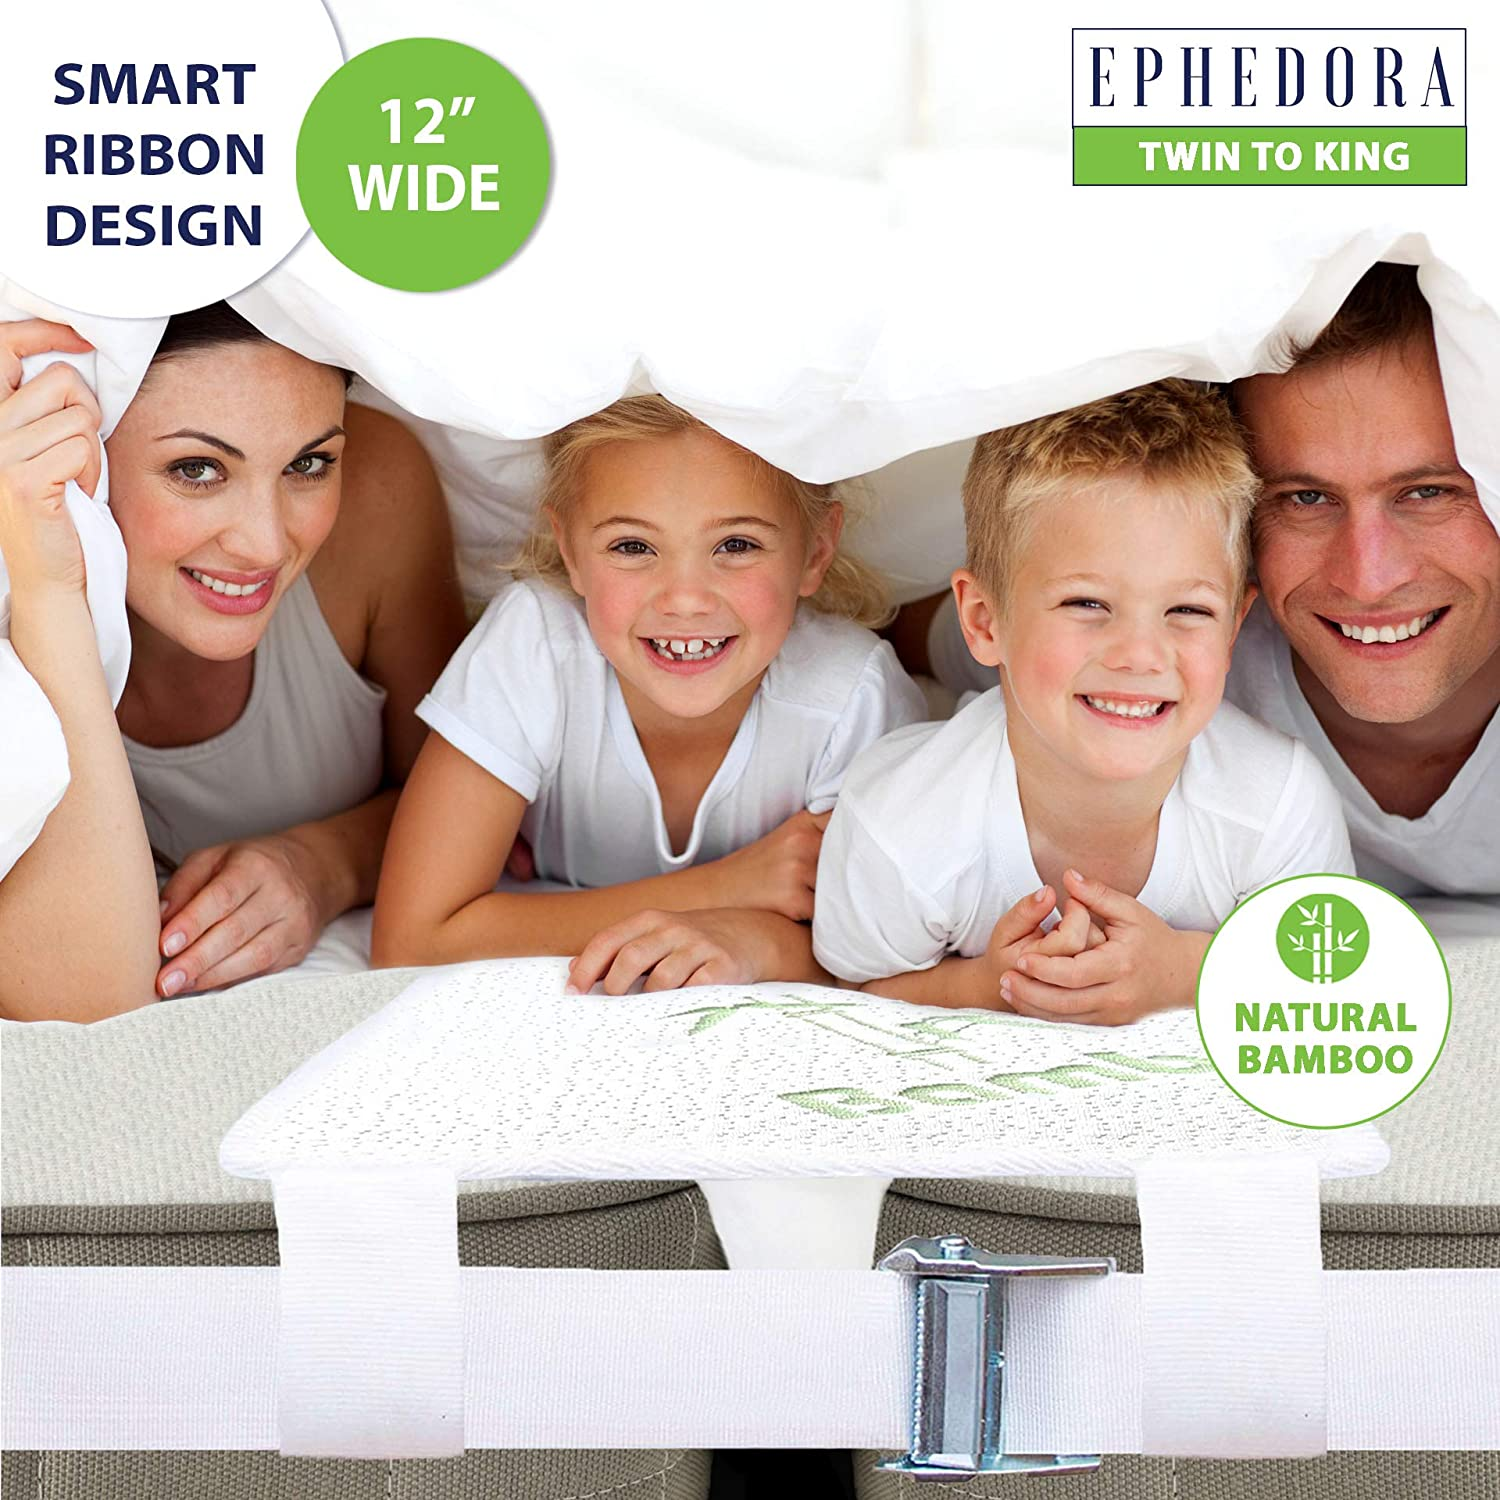 EPHEDORA Bed Bridge Twin to King Converter Kit - Mattress Extender Set to Fill in Gap - Memory Foam Filler Pad and Connector Strap - for Guest and Family Room (Twin to King Bamboo)